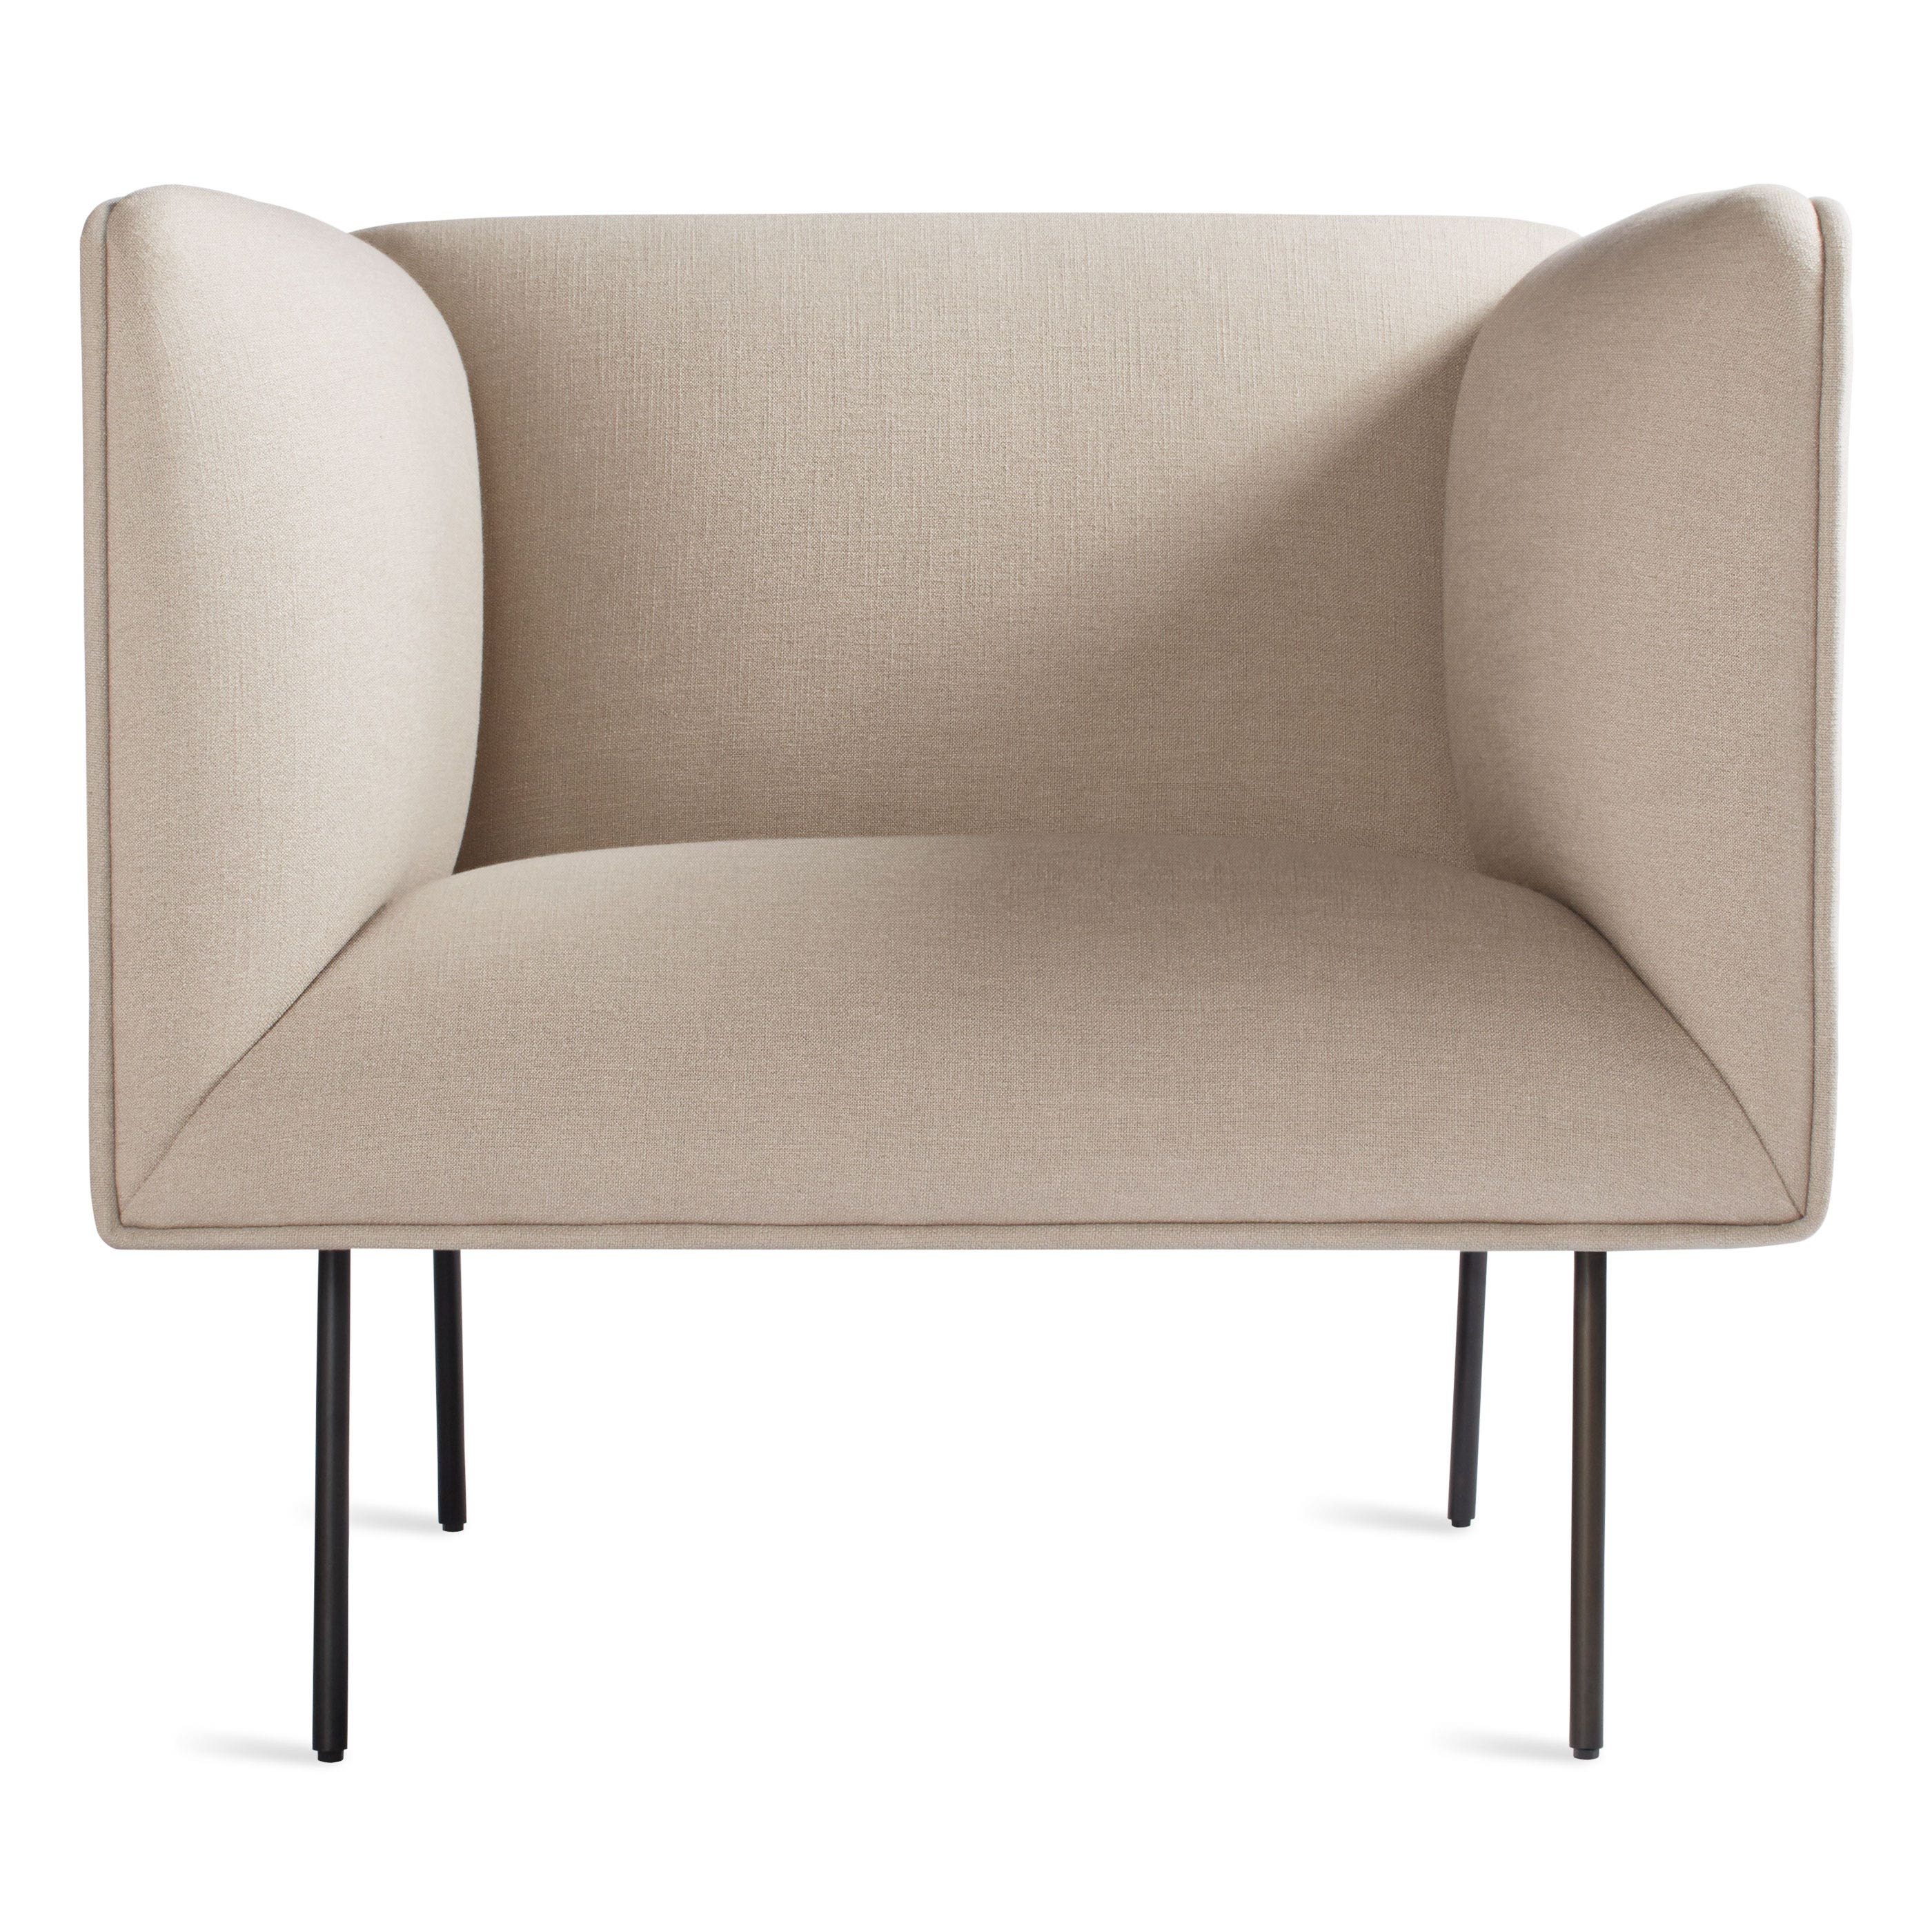 previous image dandy lounge chair oatmeal